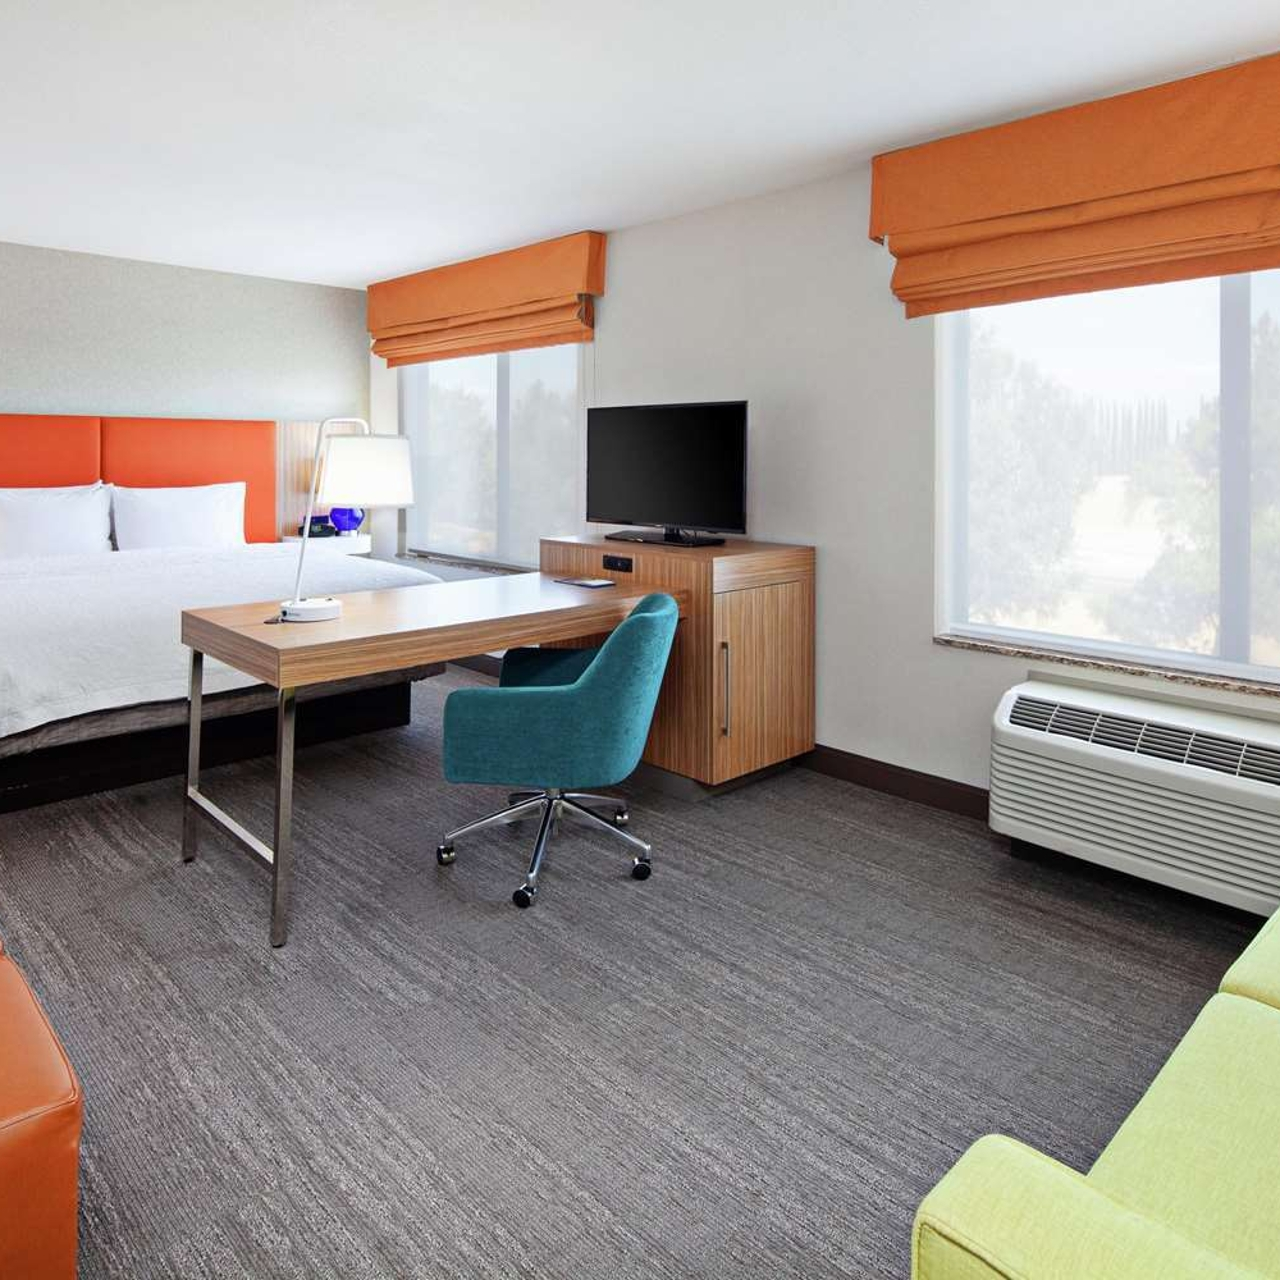 Hampton Inn Suites Chino Hills United States Of America At Hrs With Free Services